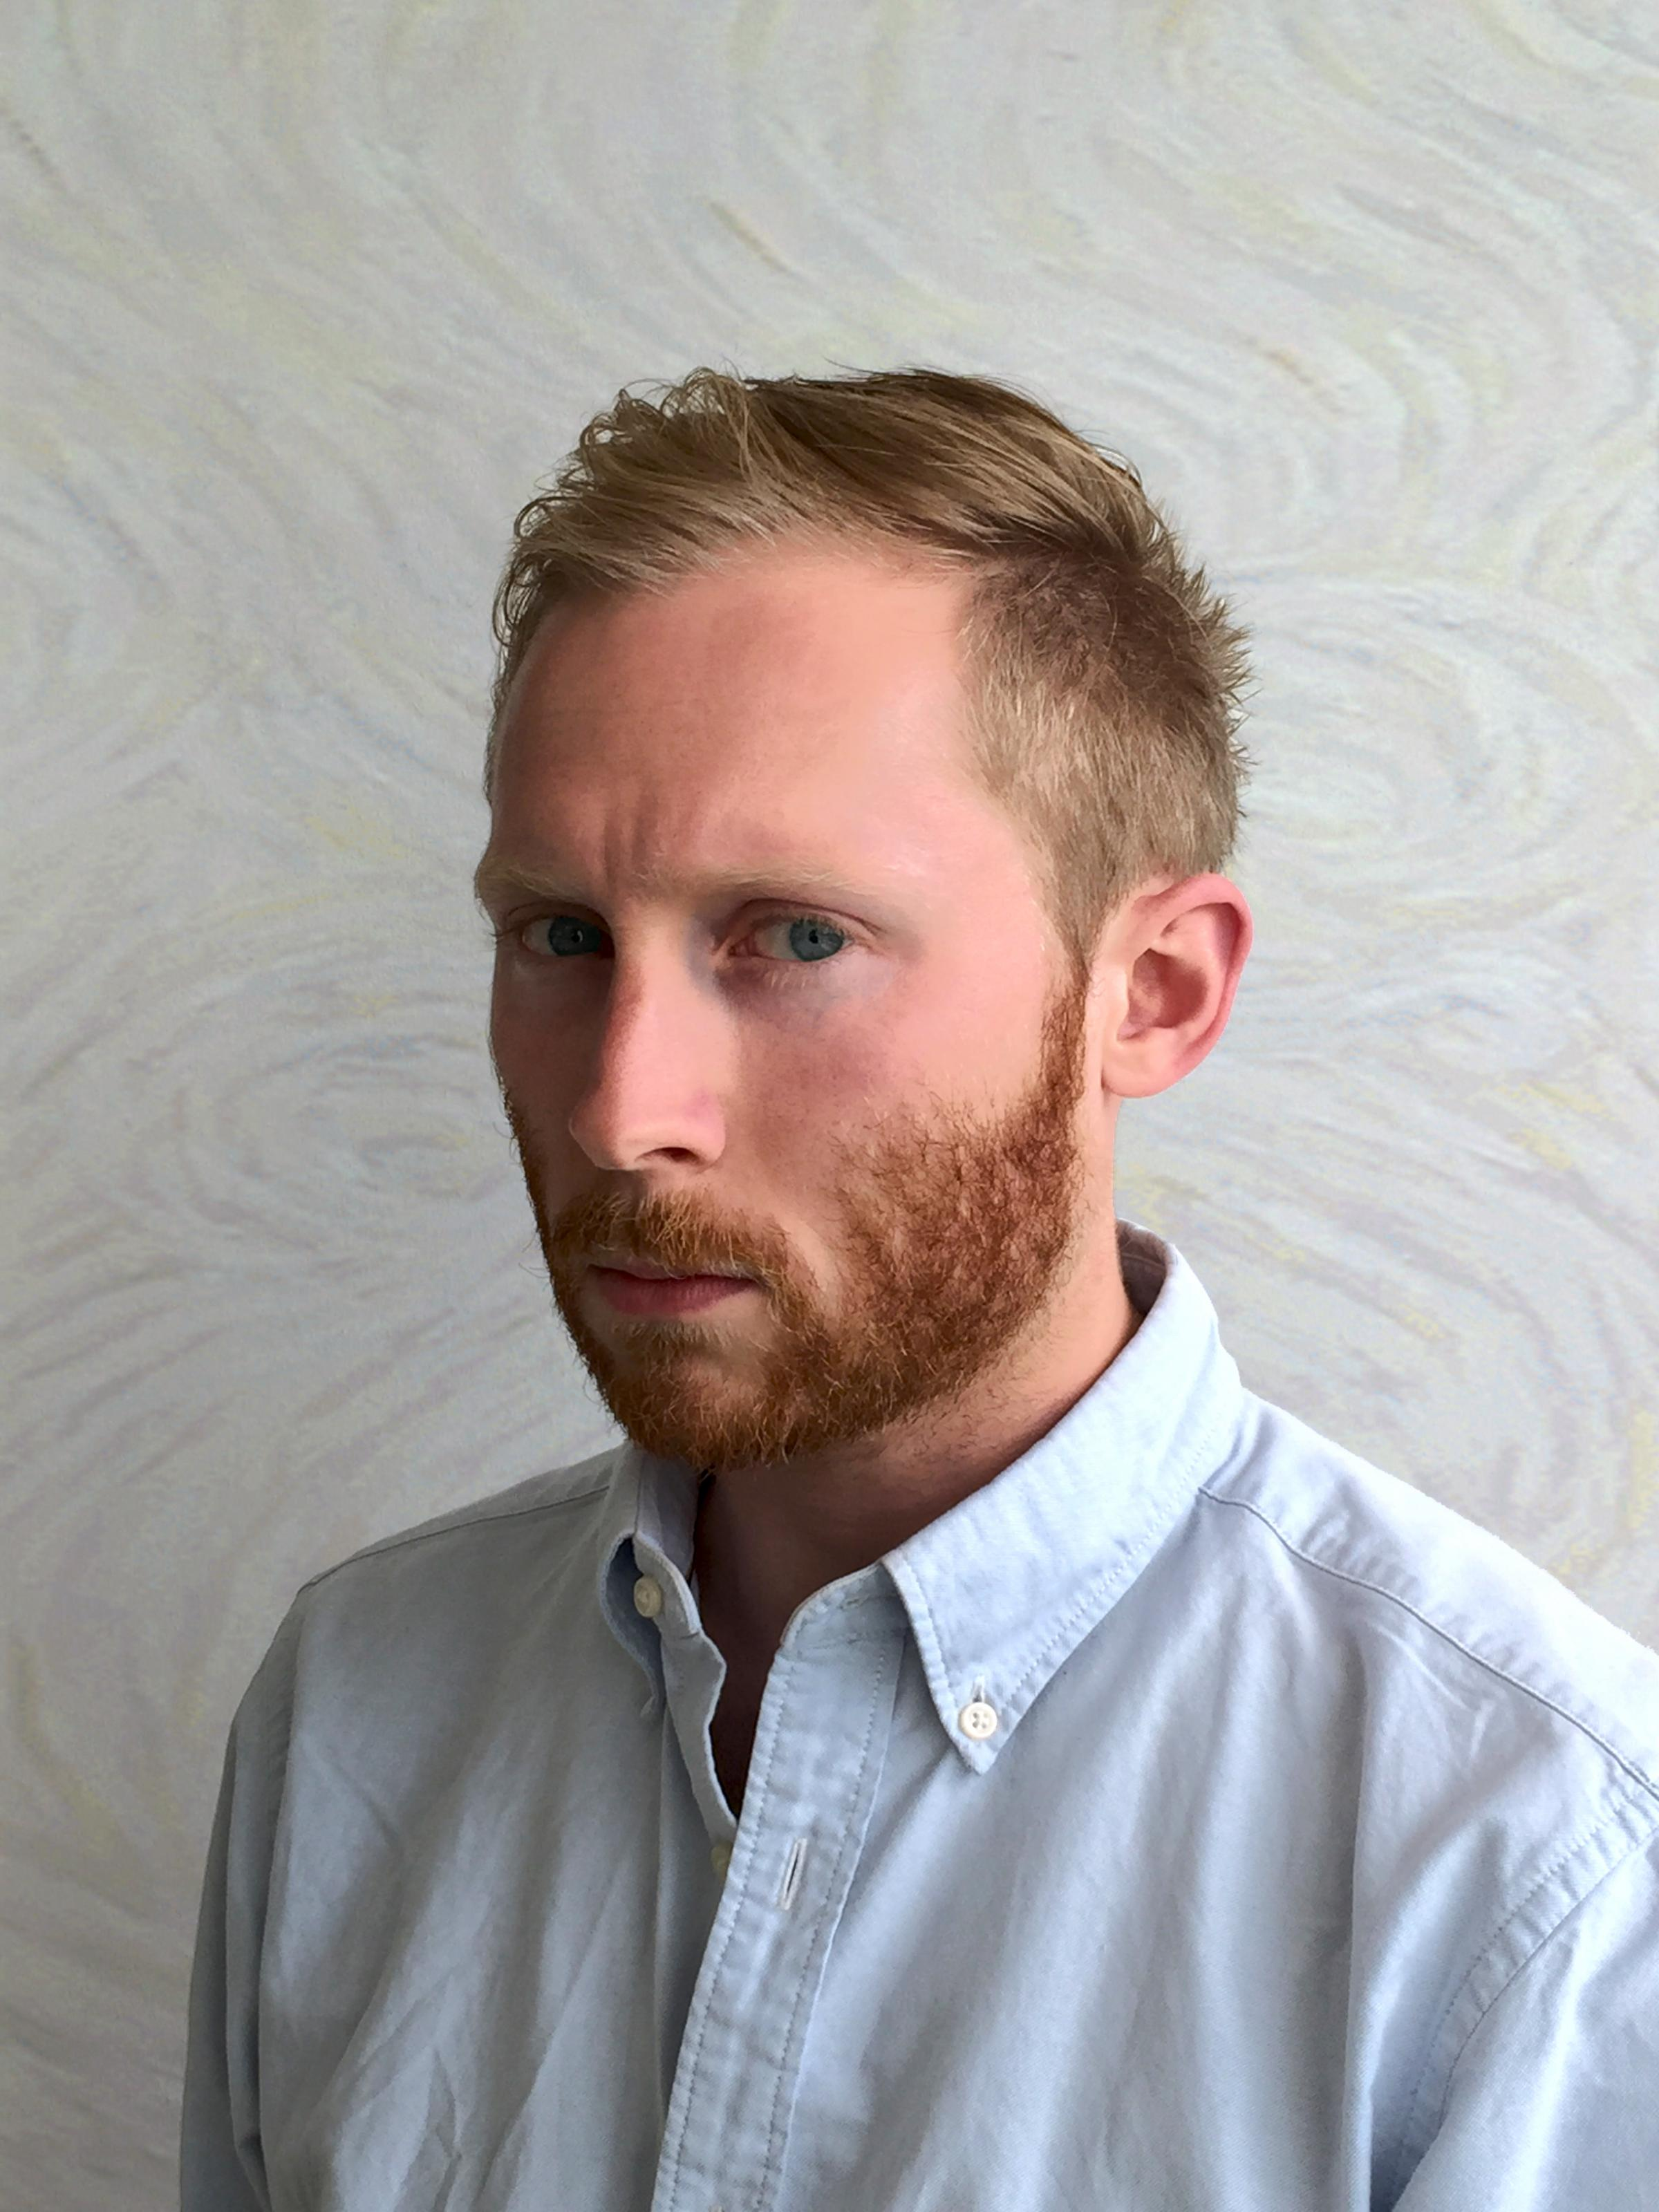 Oxford graphic designer Steve Monk-Chipman is in the top ten in an international competition to find the world's best Van Gogh lookalike.